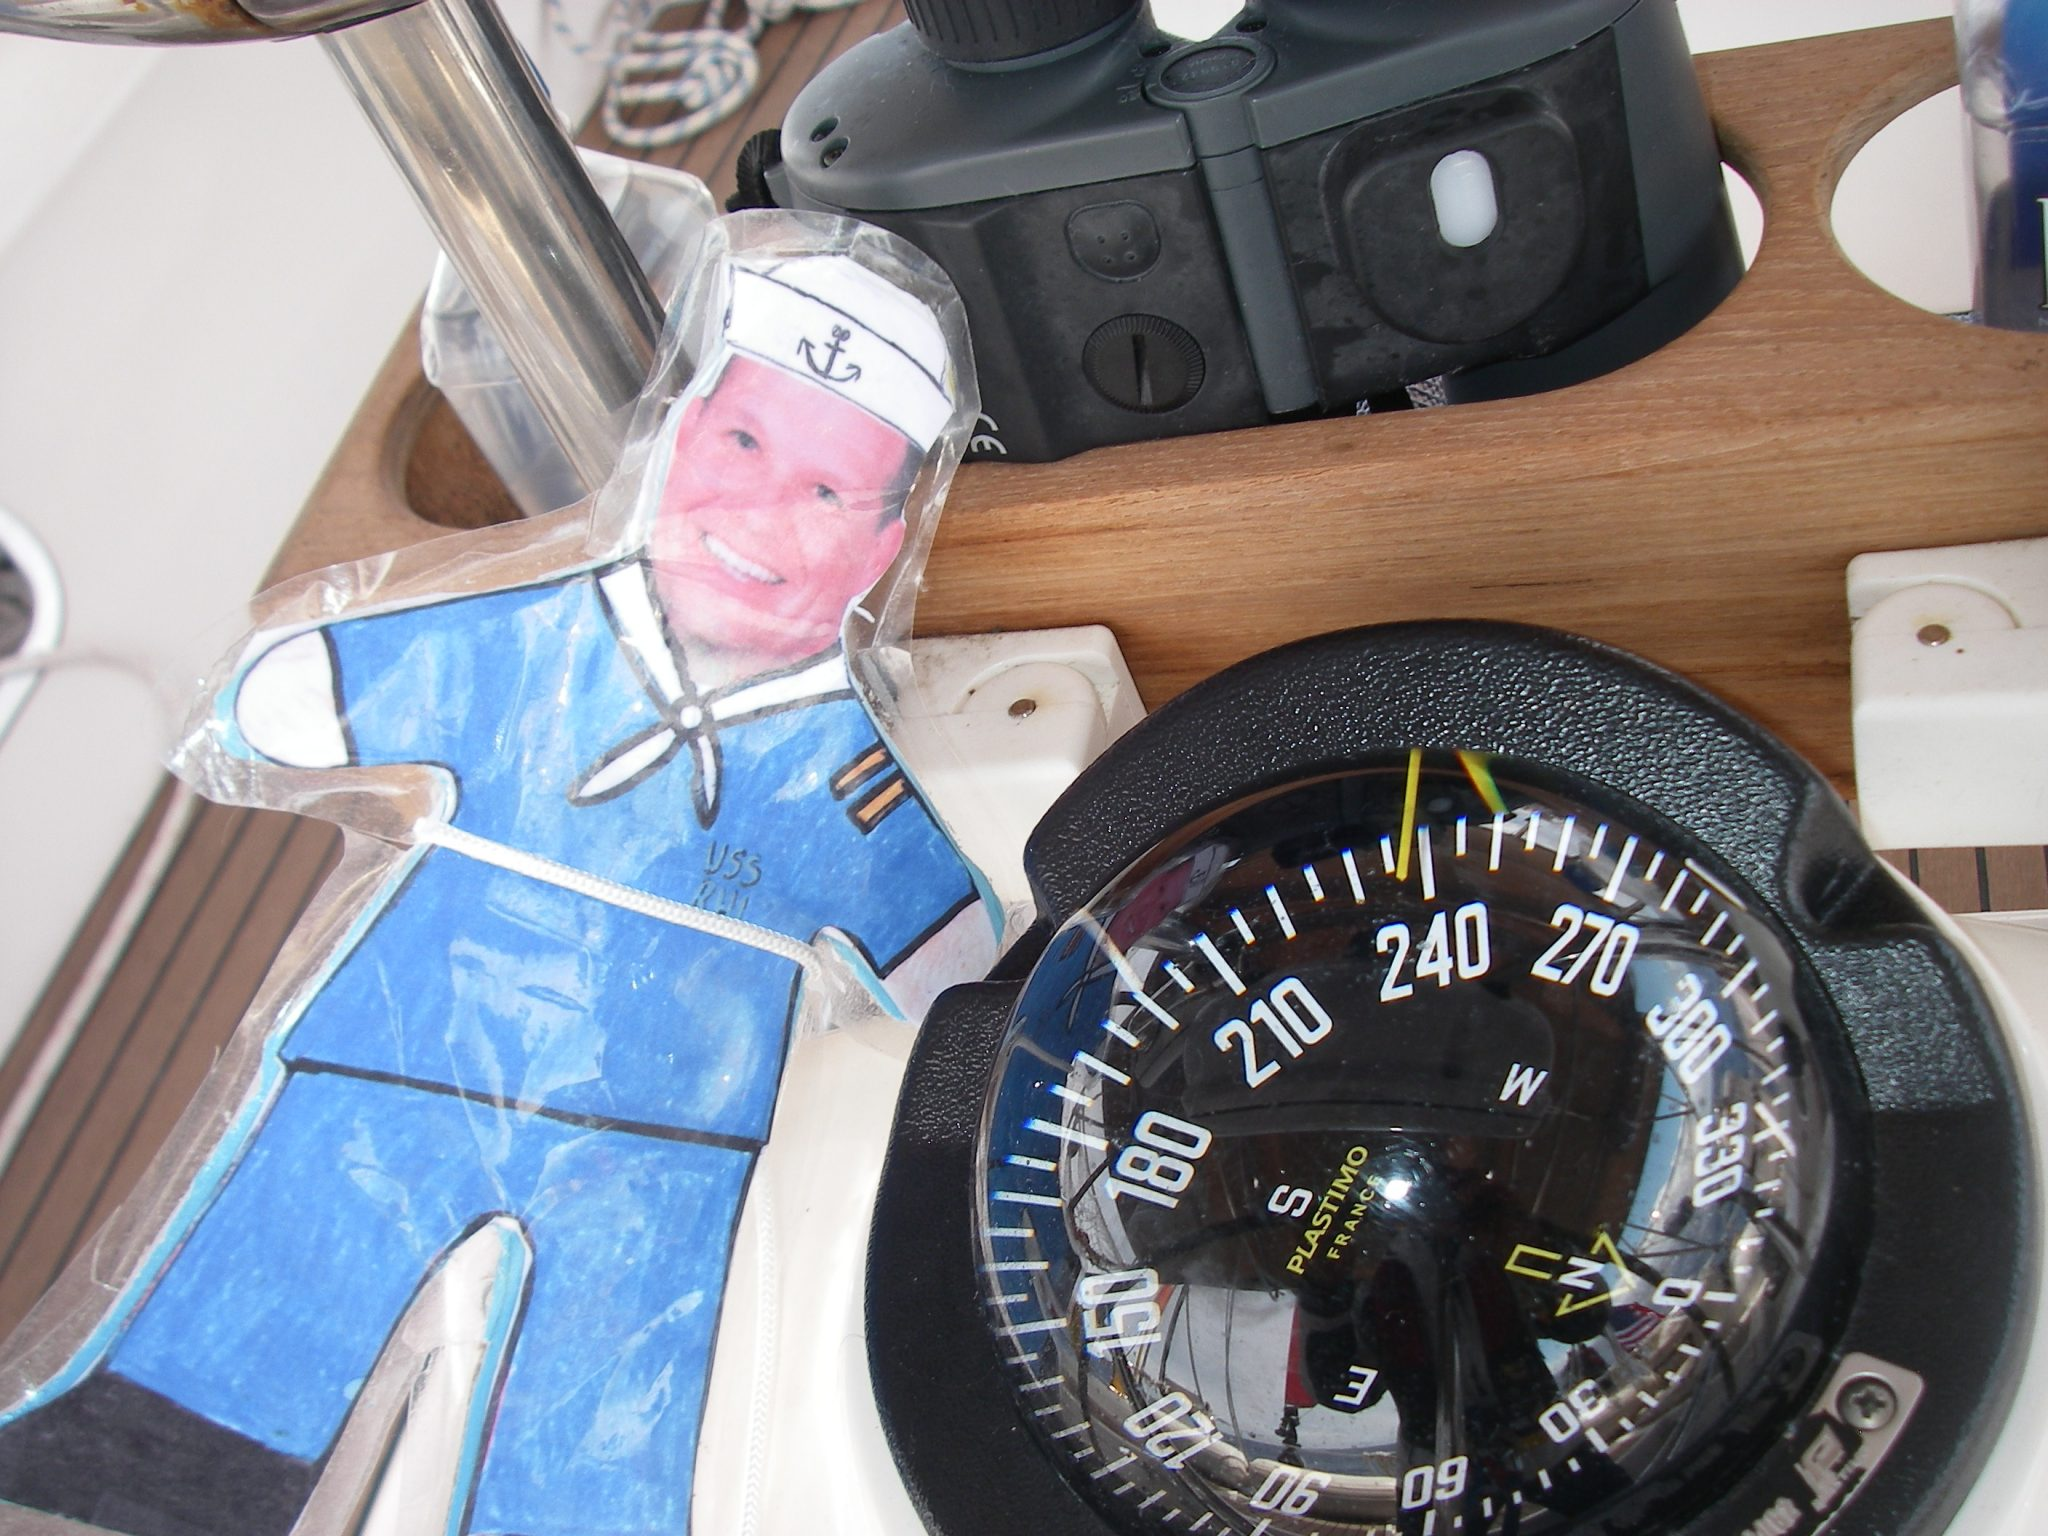 36. Flat Mr. Davis loves Joyful's ship's compass. It has a light, which we turn on at sundown while underway